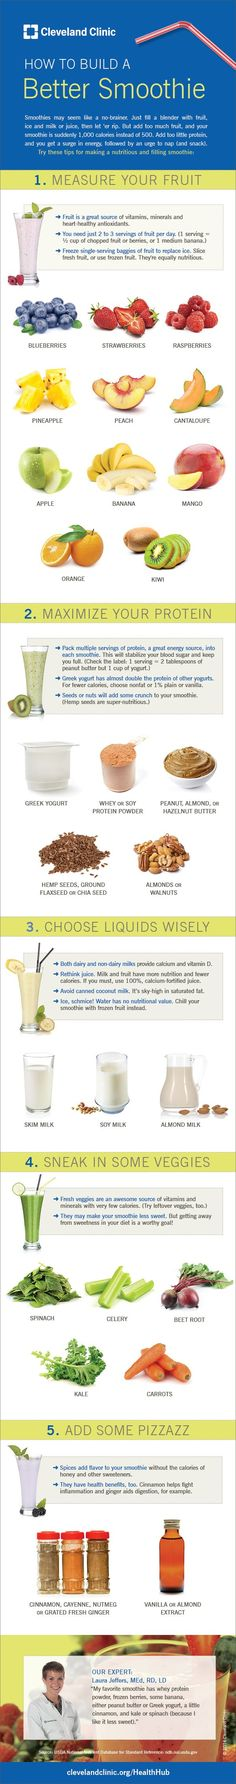 5 Ways to Build a Super Healthy Smoothie by clevelandclinic